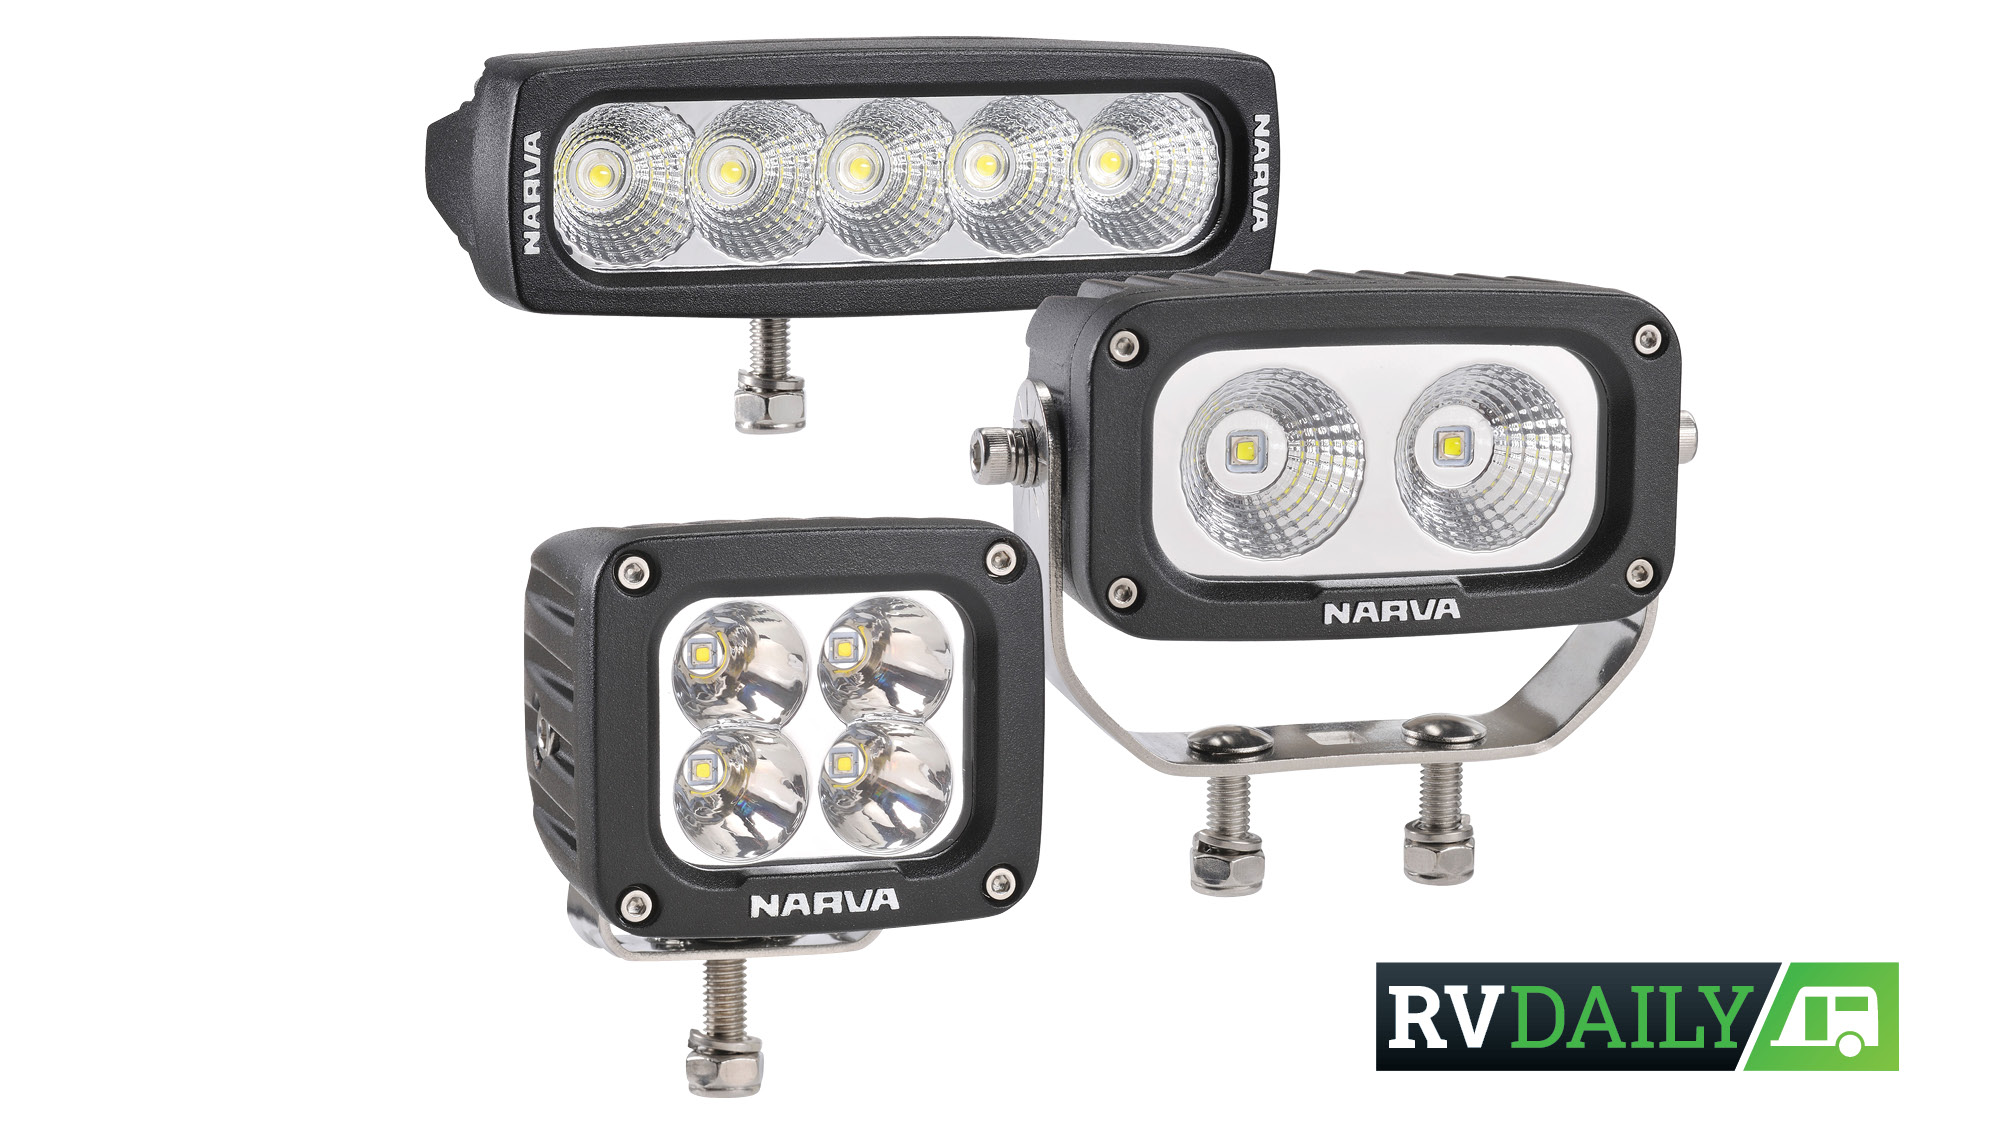 NARVA 4X4 HIGH-POWERED LED WORK LAMPS